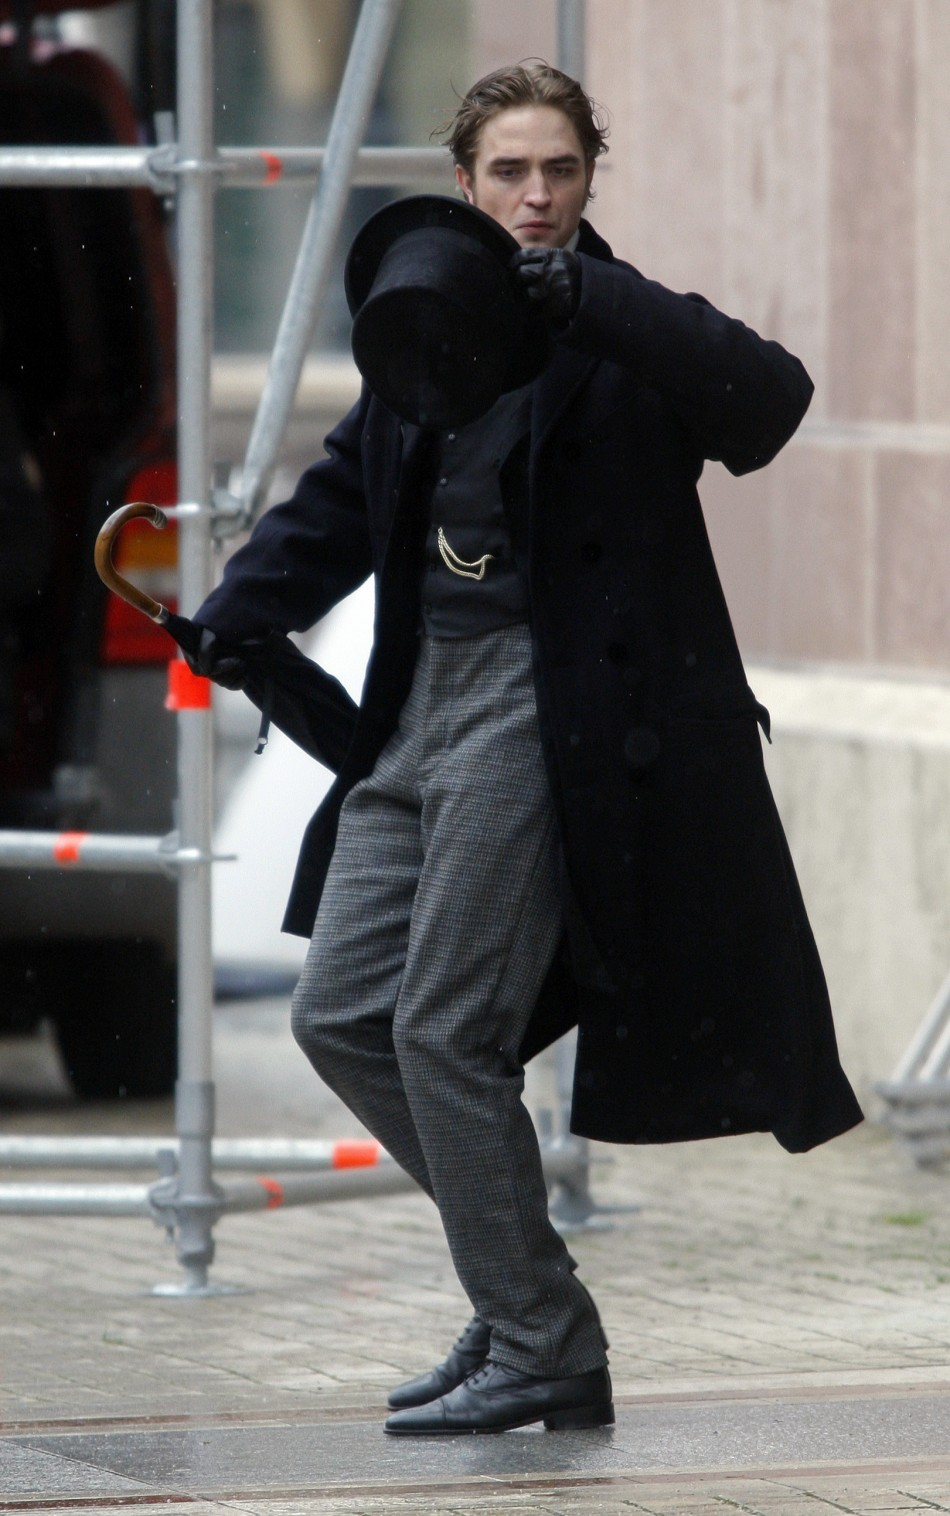 British actor Robert Pattinson is seen during the filming of a scene in his new movie, Bel Ami, in Budapest April 6, 2010.